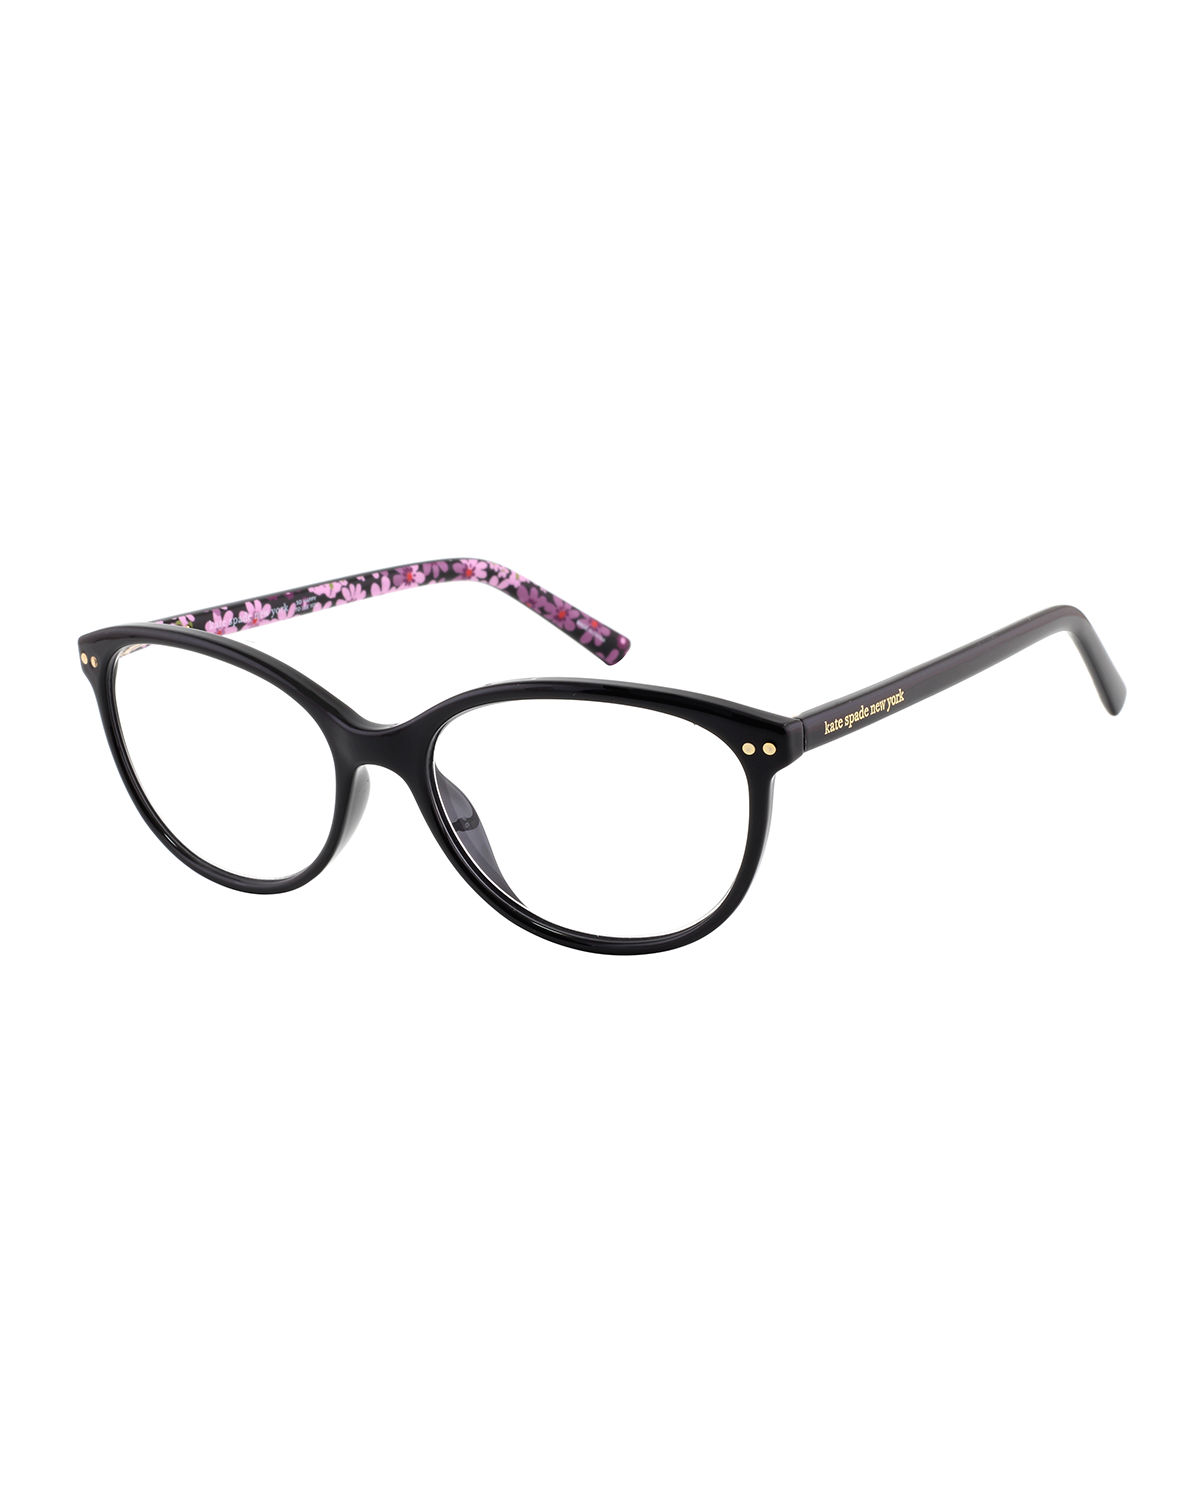 olive oval readers